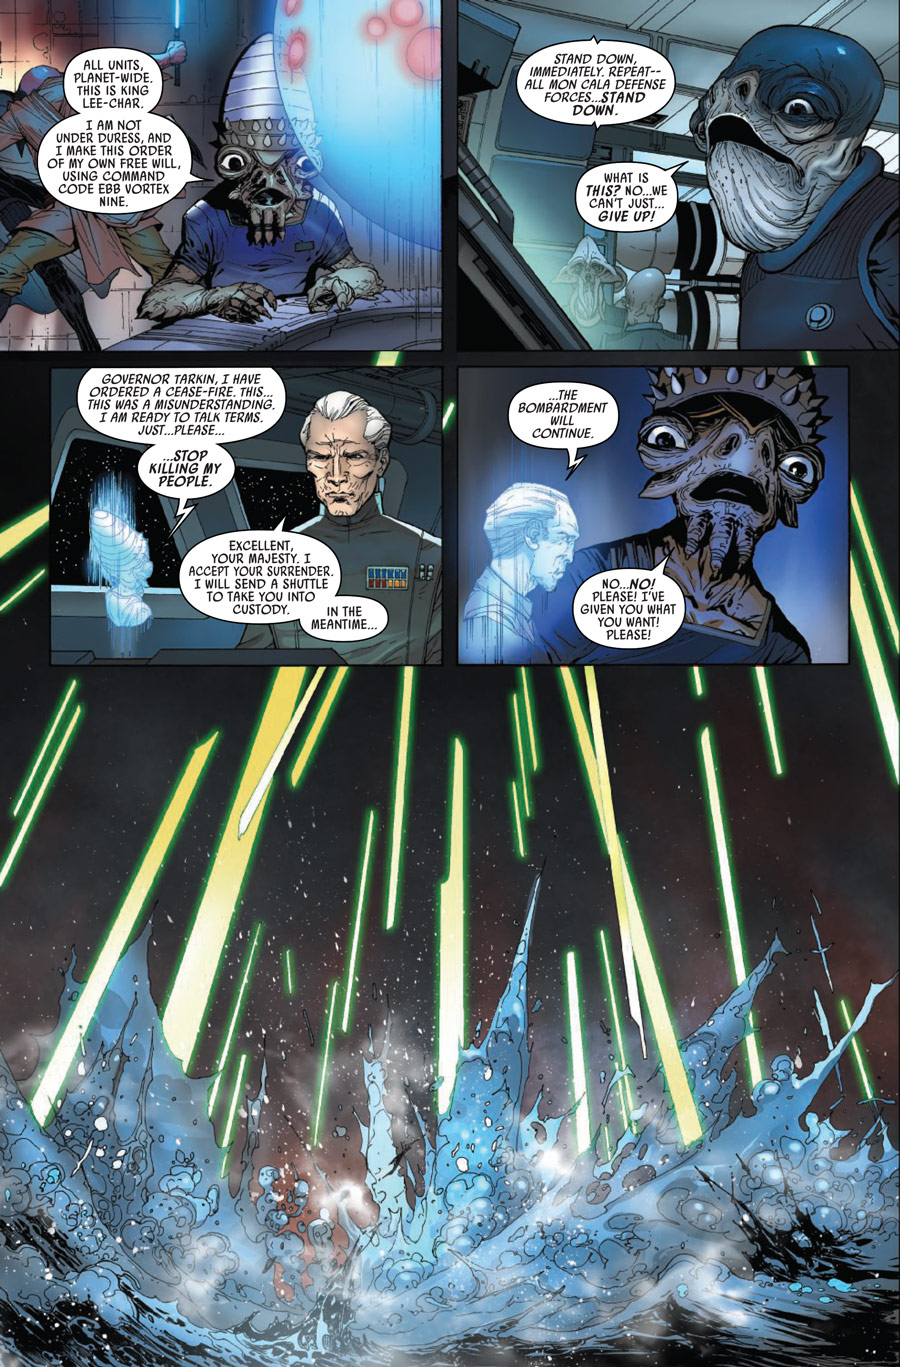 Darth Vader 17 Challenges Our Notions Of Right And Wrong Starwars Com